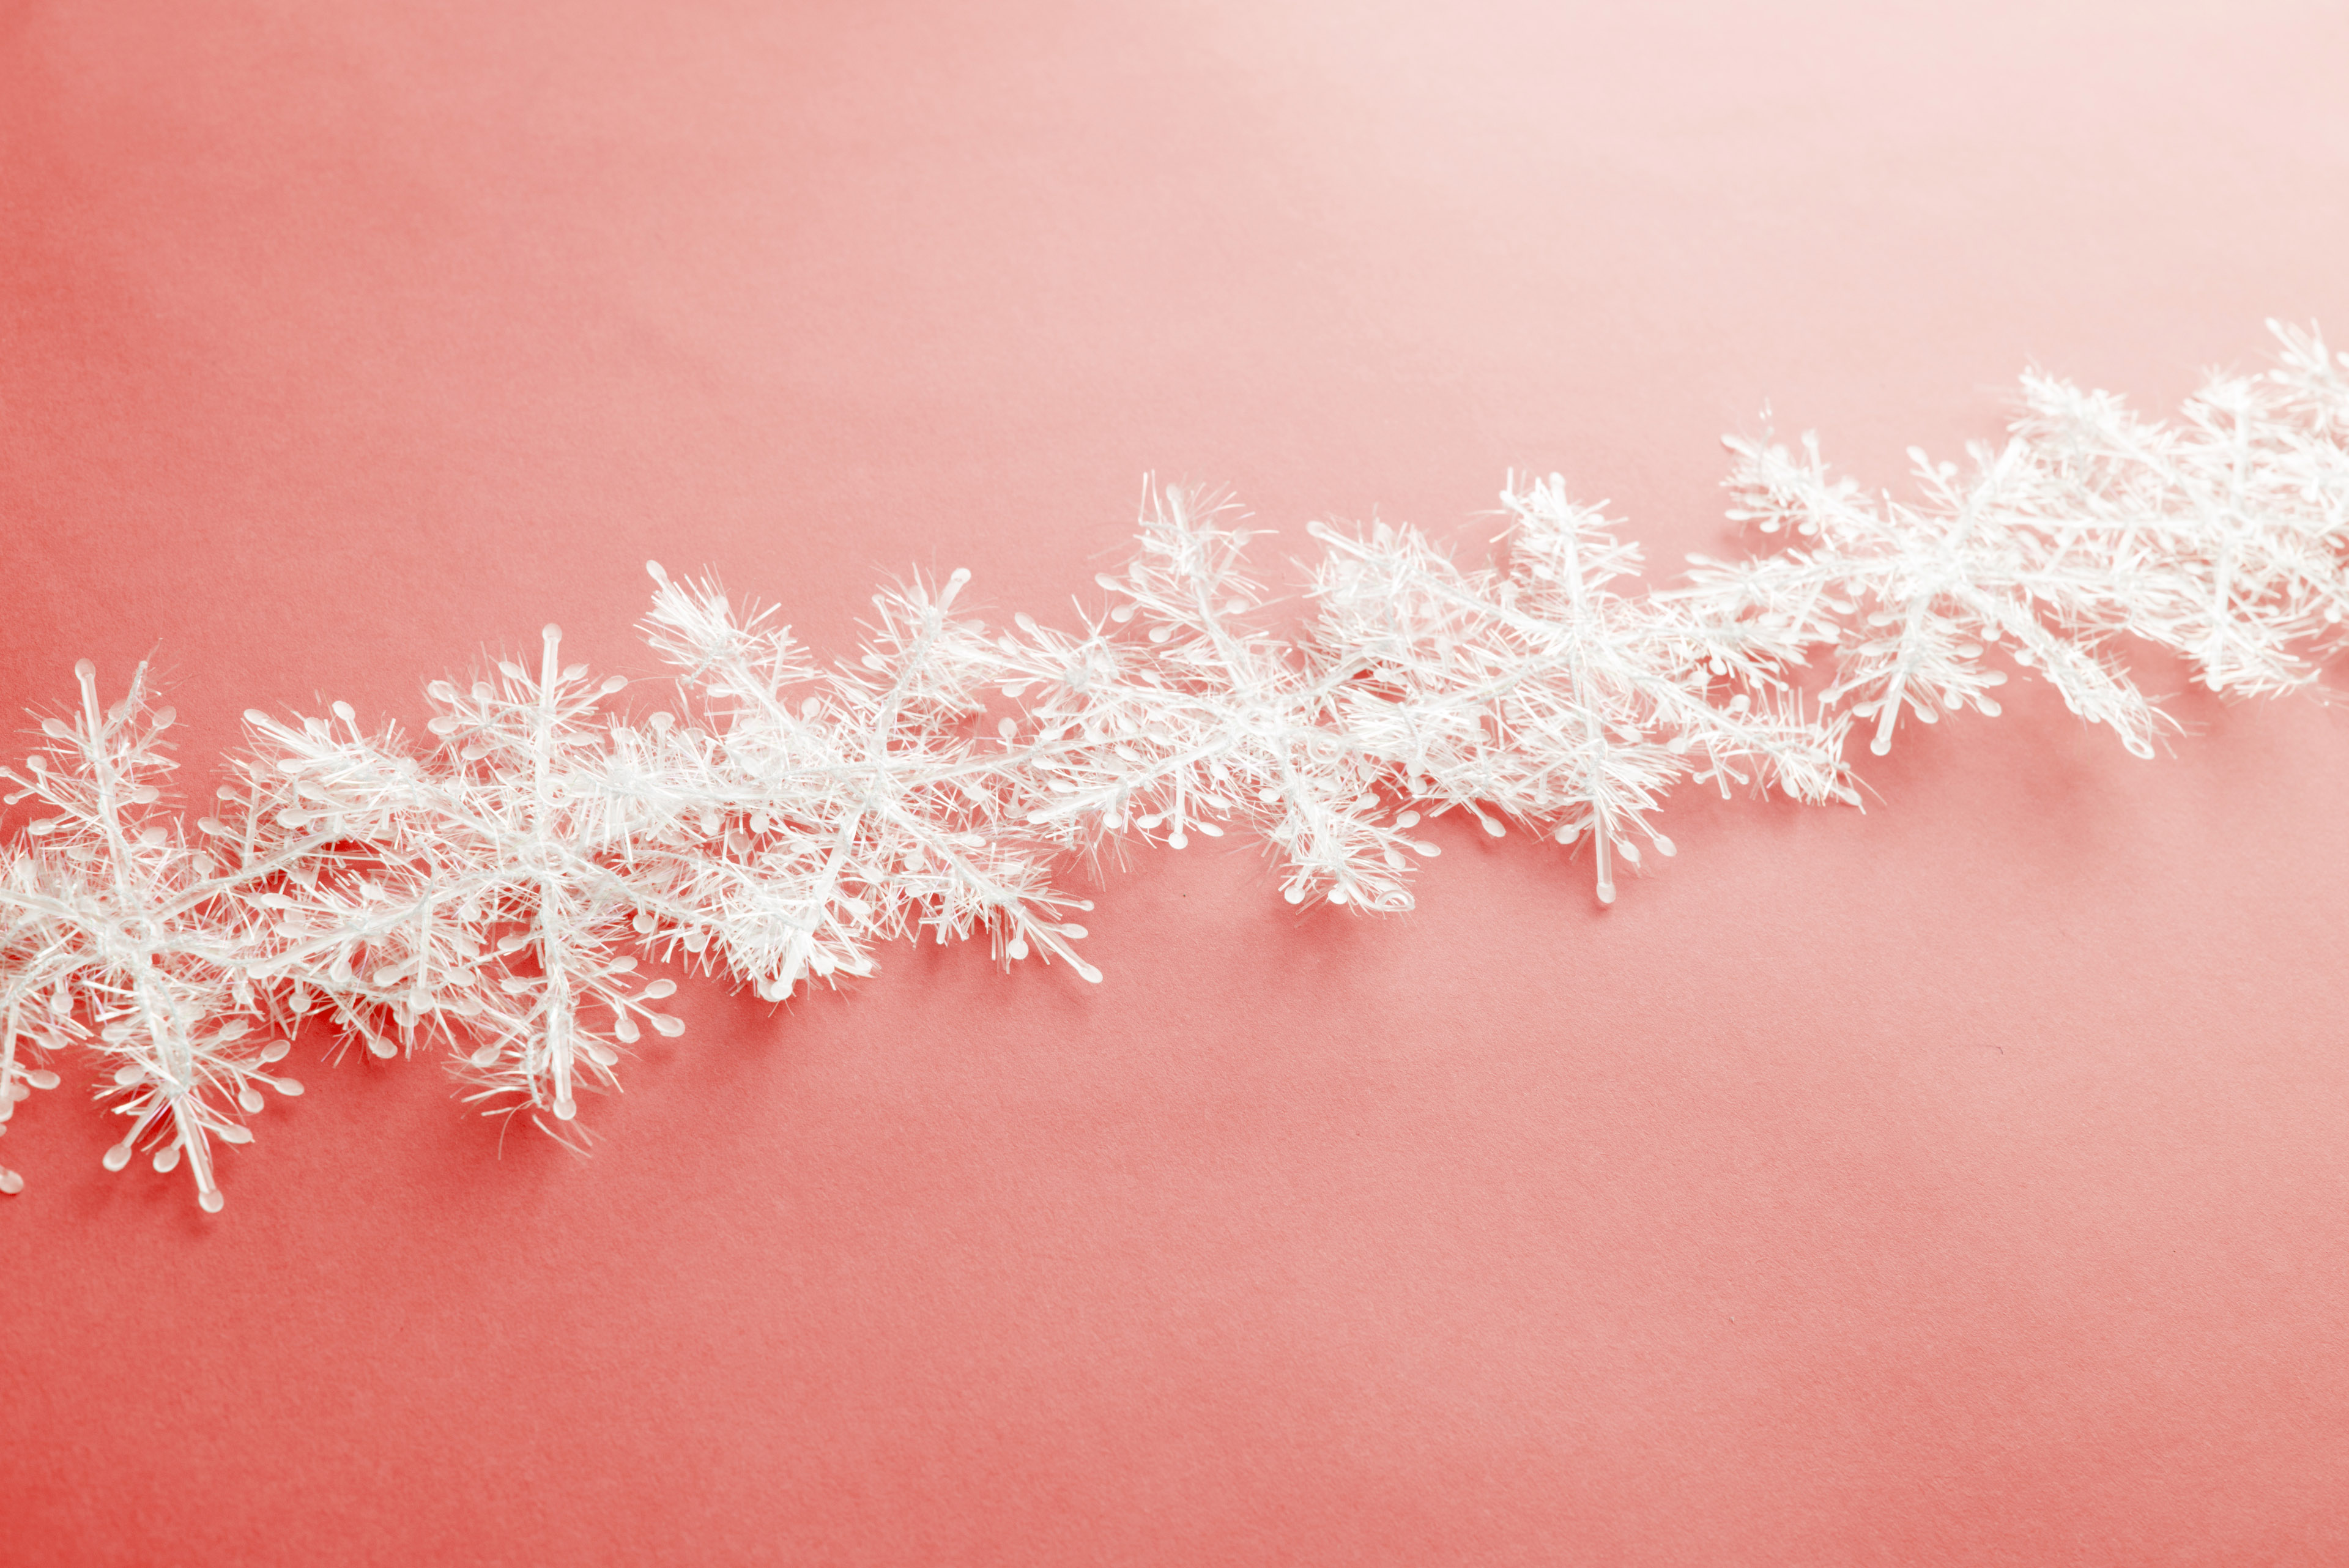 Decorative snowflake line lying against pink background